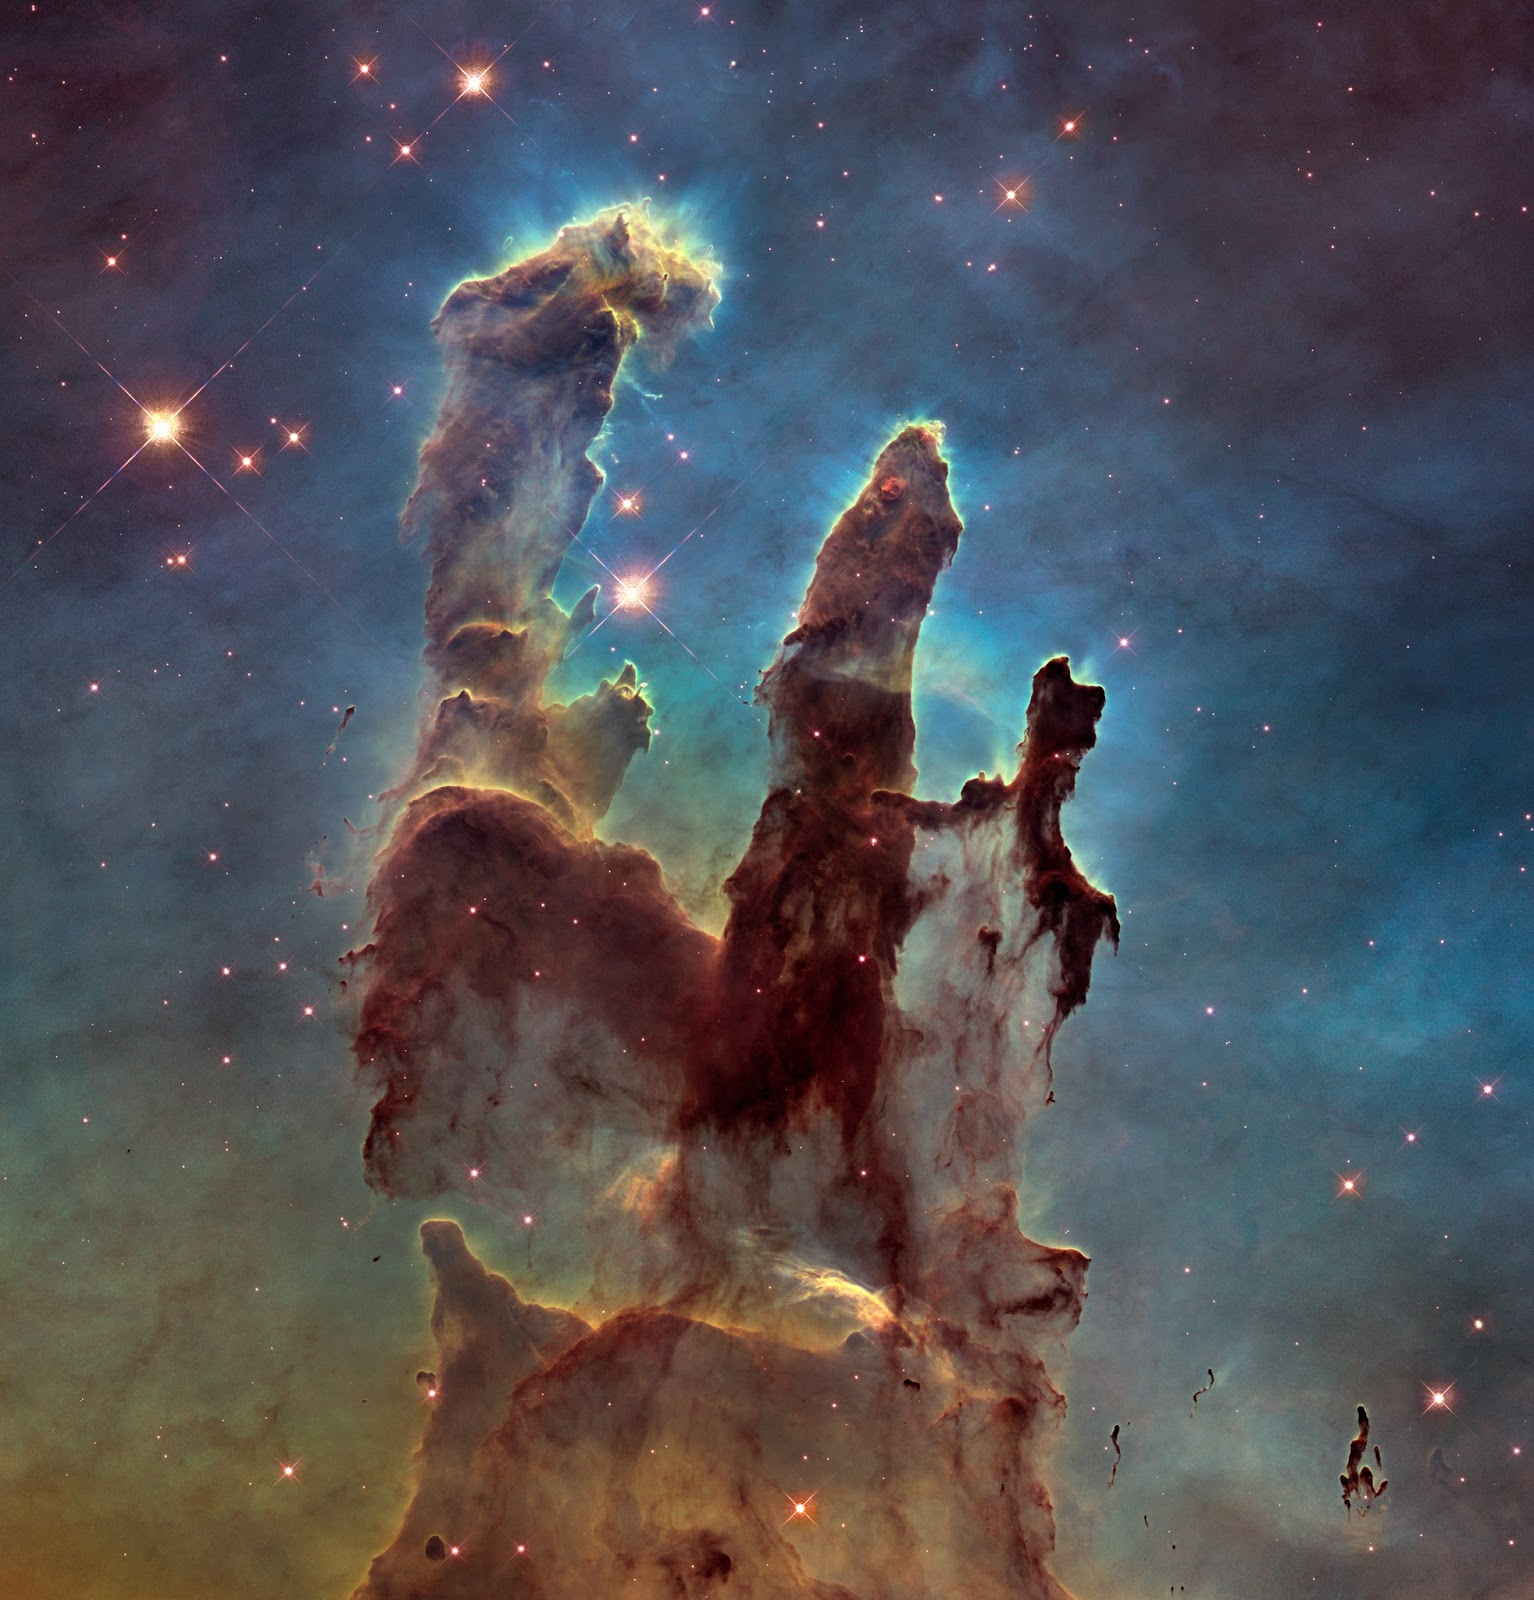 New view of the Pillars of Creation New view of the Pillars of Creation   The NASA/ESA Hubble Space Telescope has revisited one of its most iconic and popular images: the Eagle Nebula's Pillars of Creation. This image shows the pillars as seen in visible light, capturing the multi-coloured glow of gas clouds, wispy tendrils of dark cosmic dust, and the rust-coloured elephants' trunks of the nebula's famous pillars.  The dust and gas in the pillars is seared by the intense radiation from young stars and eroded by strong winds from massive nearby stars. With these new images comes better contrast and a clearer view for astronomers to study how the structure of the pillars is changing over time.  Image Credit: NASA, ESA/Hubble and the Hubble Heritage Team Explanation from: http://www.spacetelescope.org/images/heic1501a/